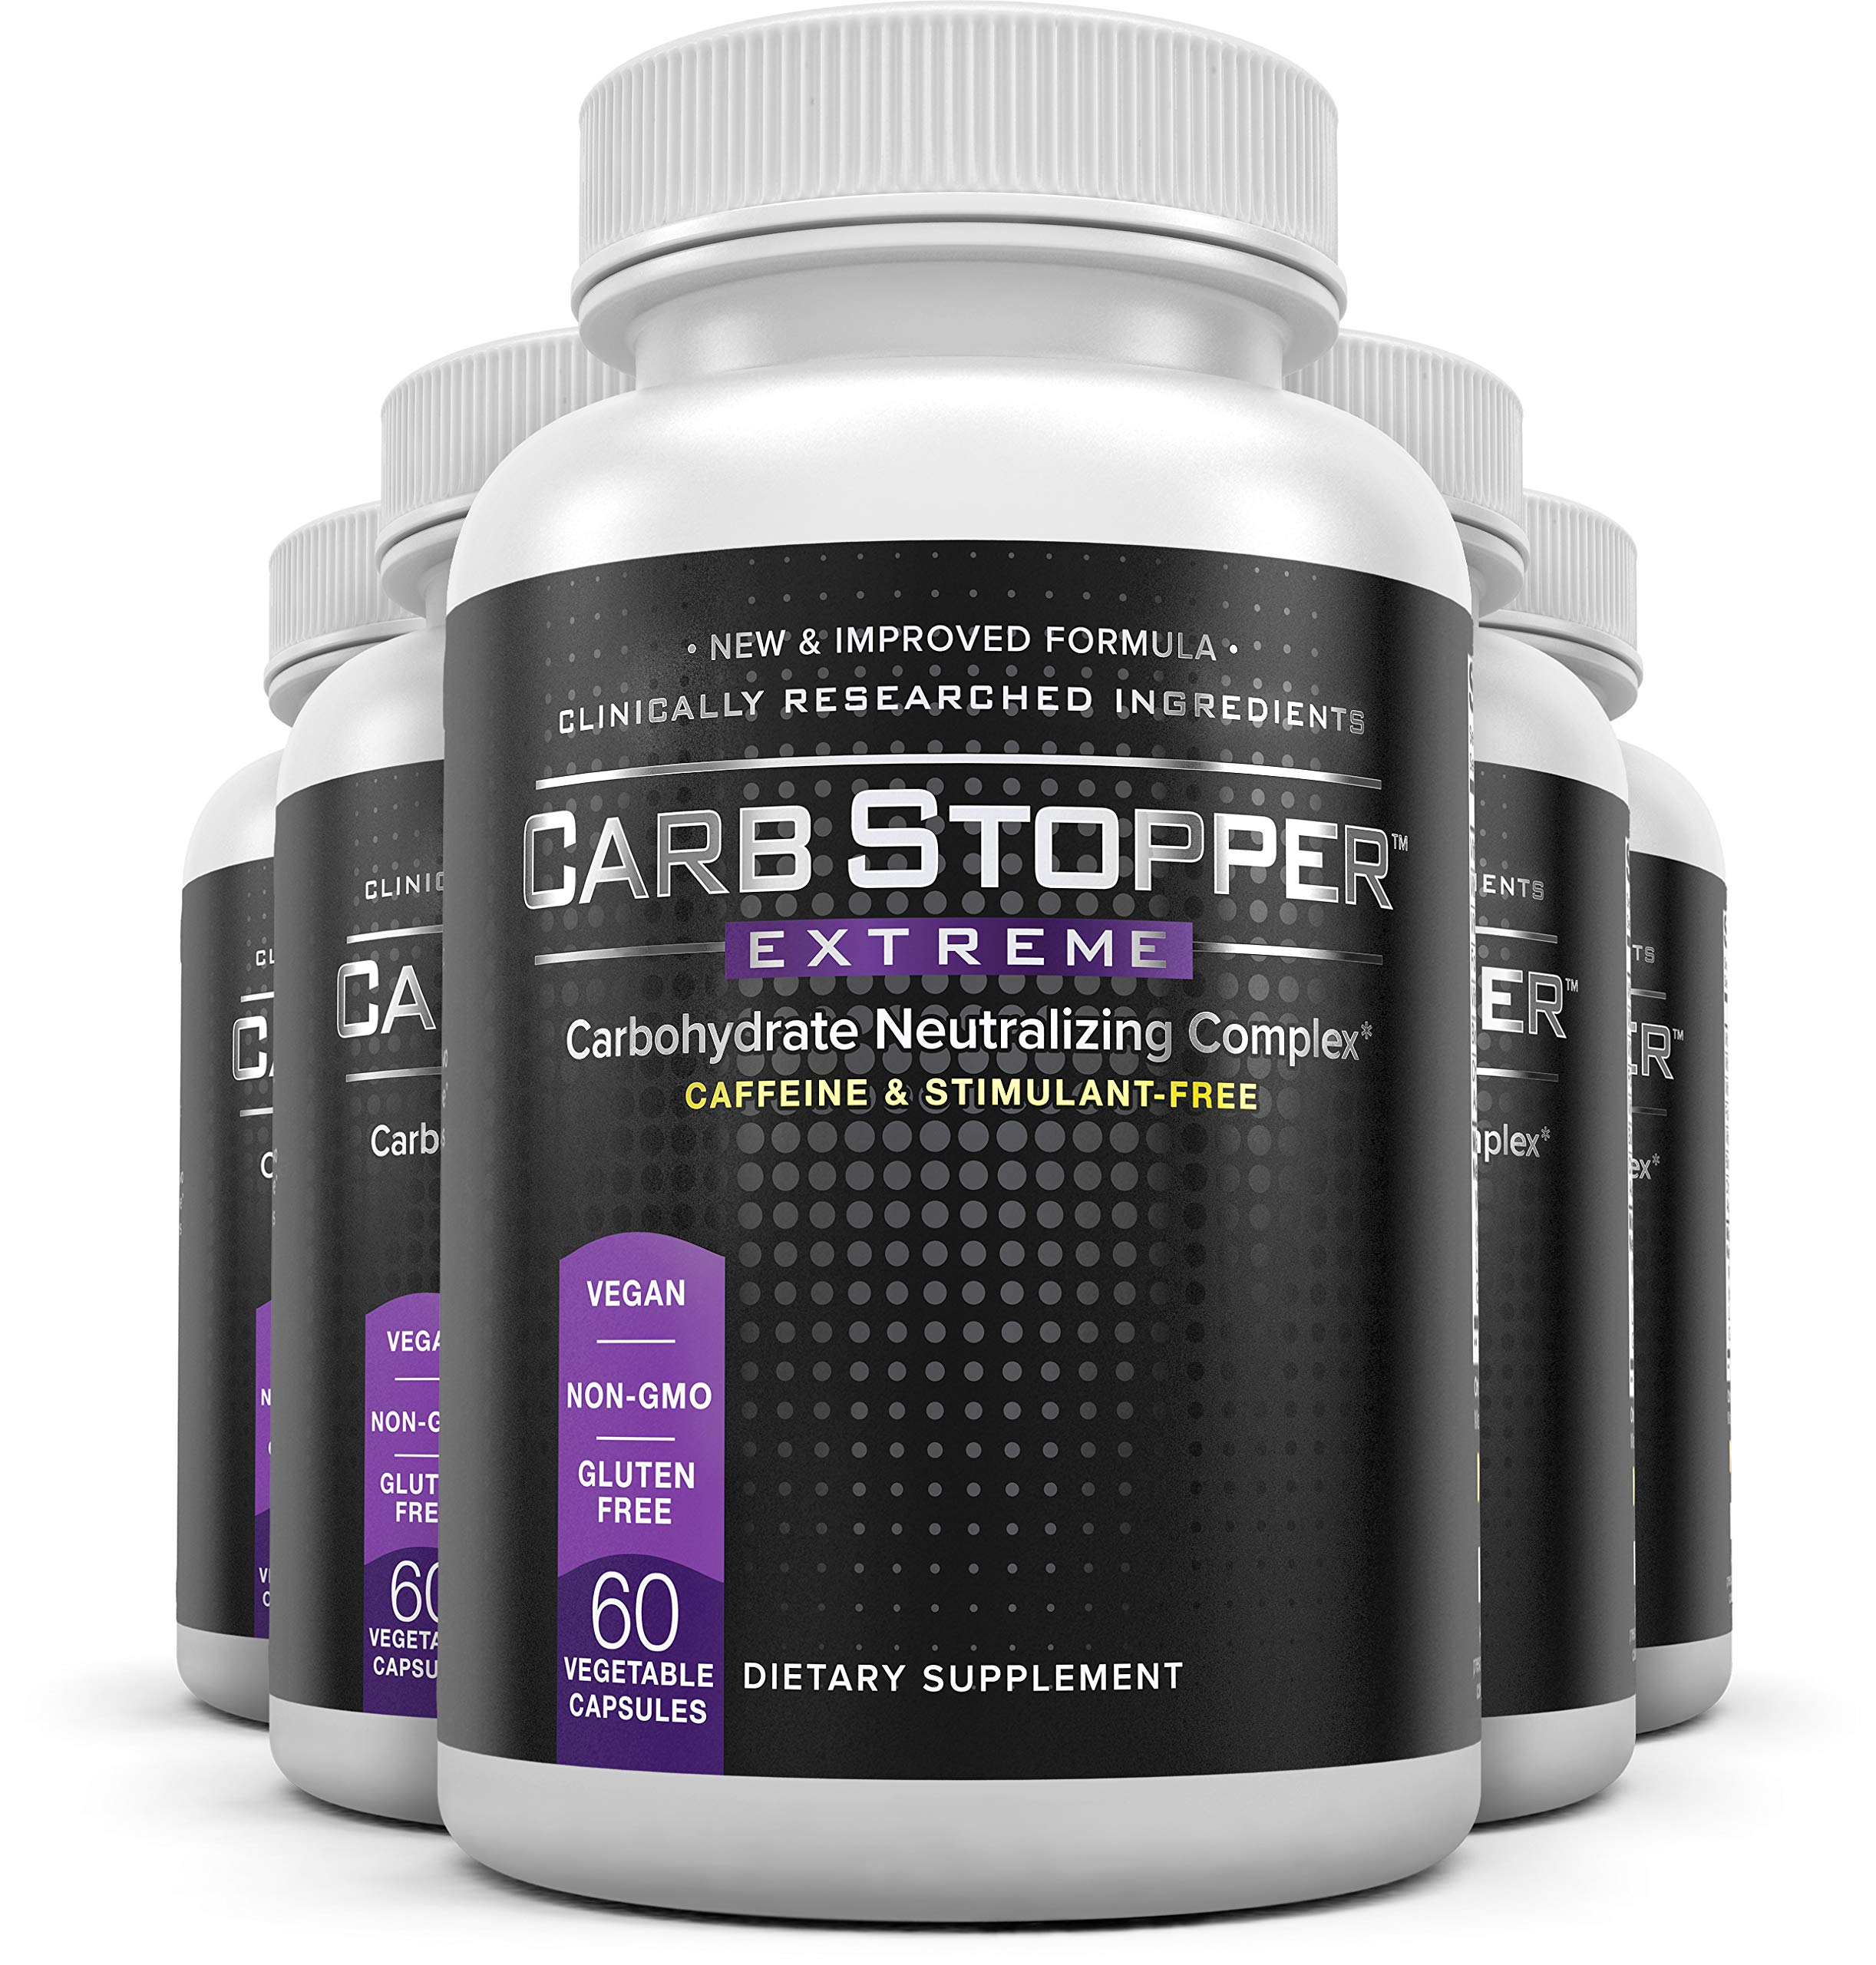 Carb Stopper Extreme (5 Bottles) - Maximum Strength, All-Natural Carbohydrate and Starch Blocker Weight Loss Supplement   Absorb Fat with White Kidney Bean Extract Diet Pills, 60 Capsules Per Bottle by Carb Stopper Extreme